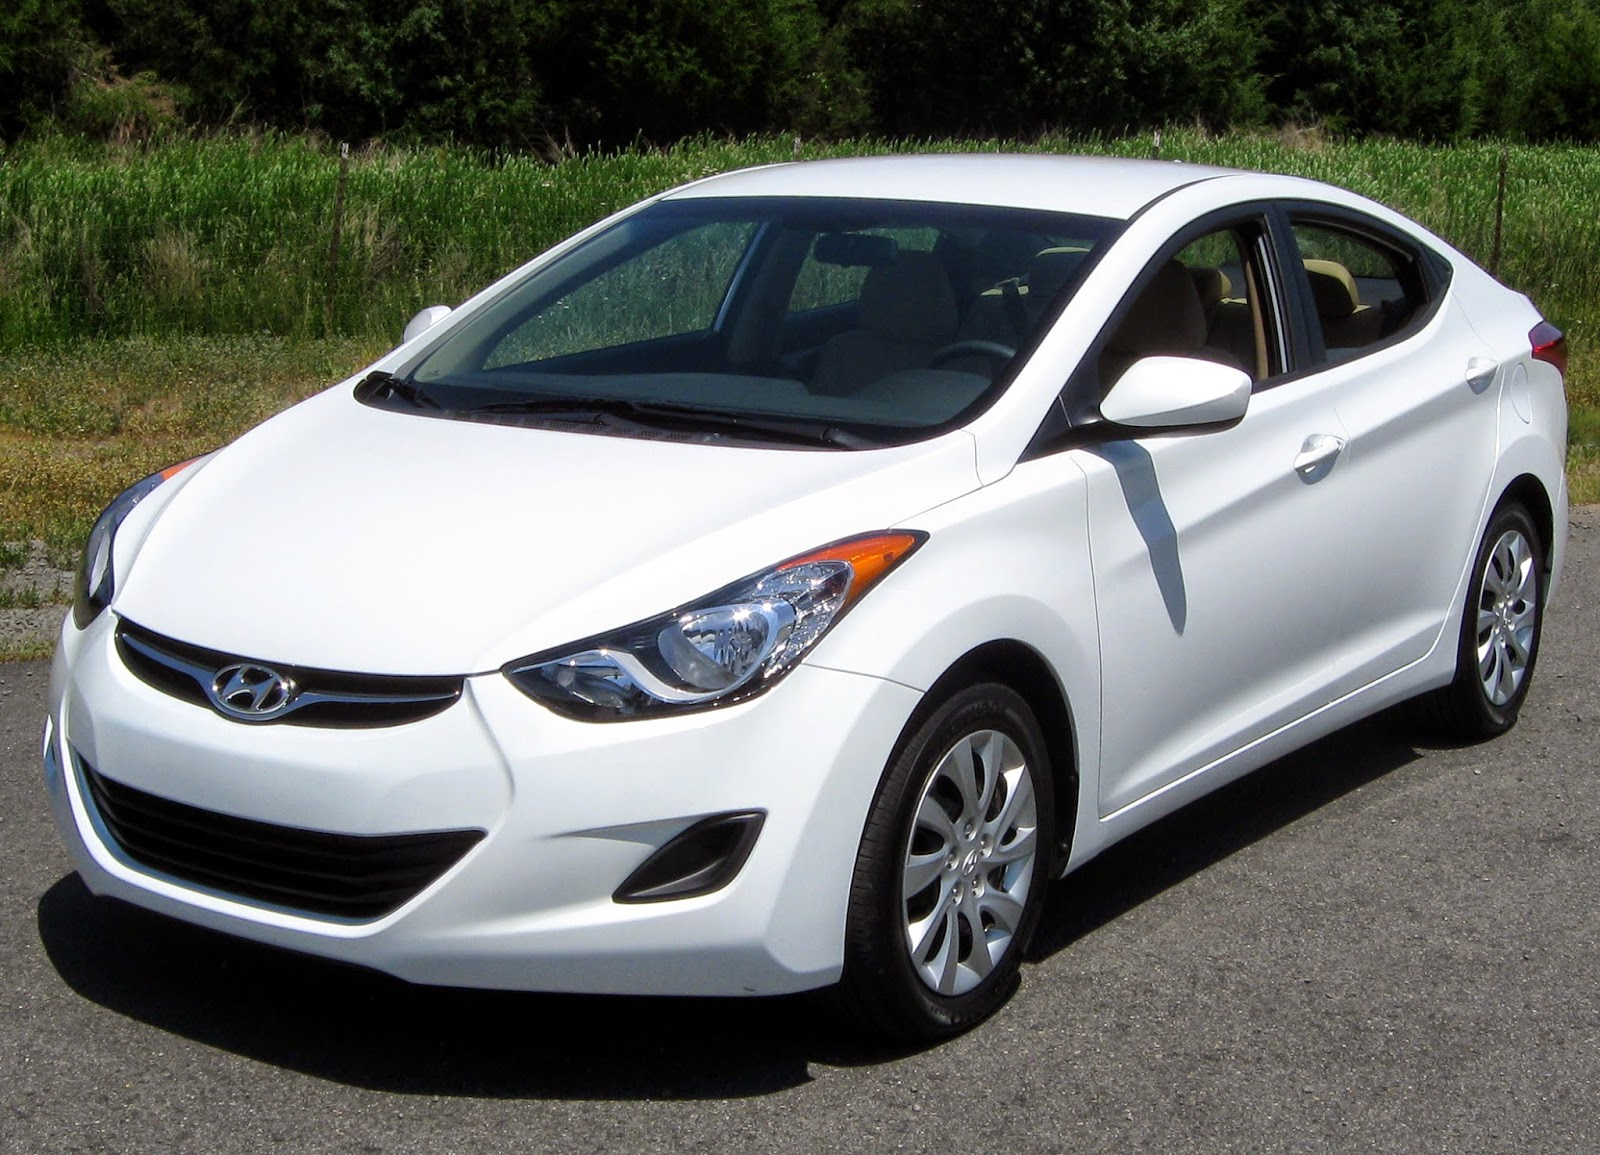 The Hyundai Elantra was crowned North American Car of the Year at the 2012 Detroit Auto Show.